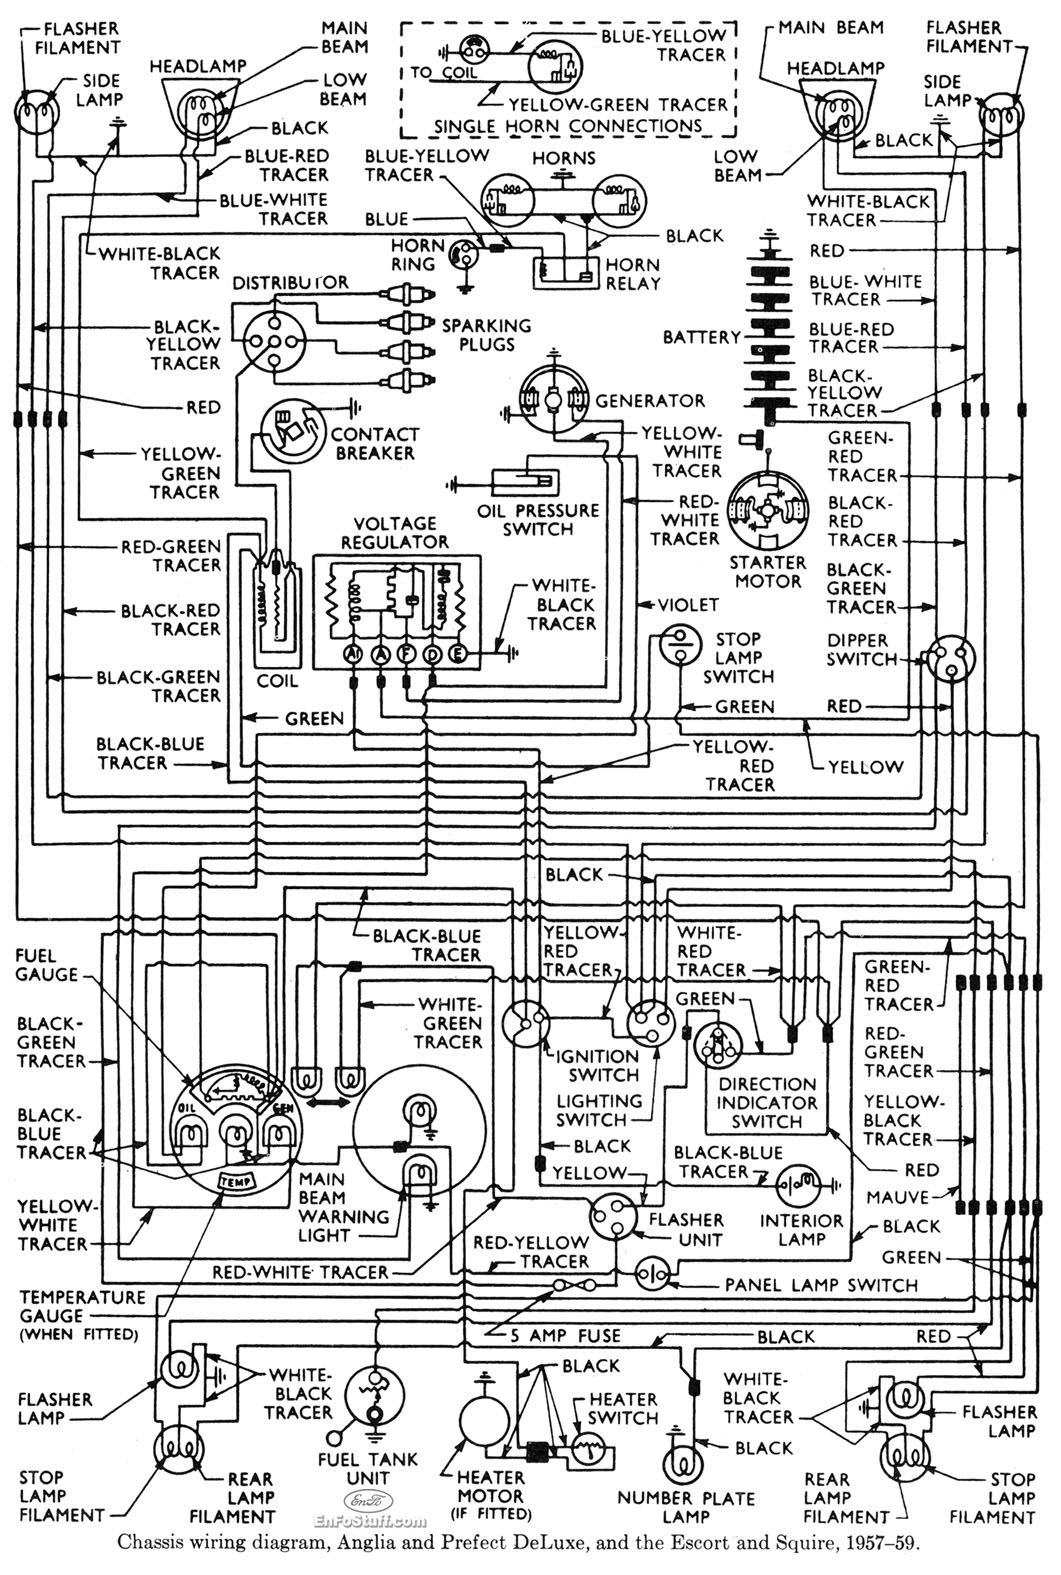 Columbia Par Car Electrical Schematic Wiring Diagram 52 1980 Club Ford Anglia Prefect Escort Squire 1957 59 1955 Suppliment 110 41